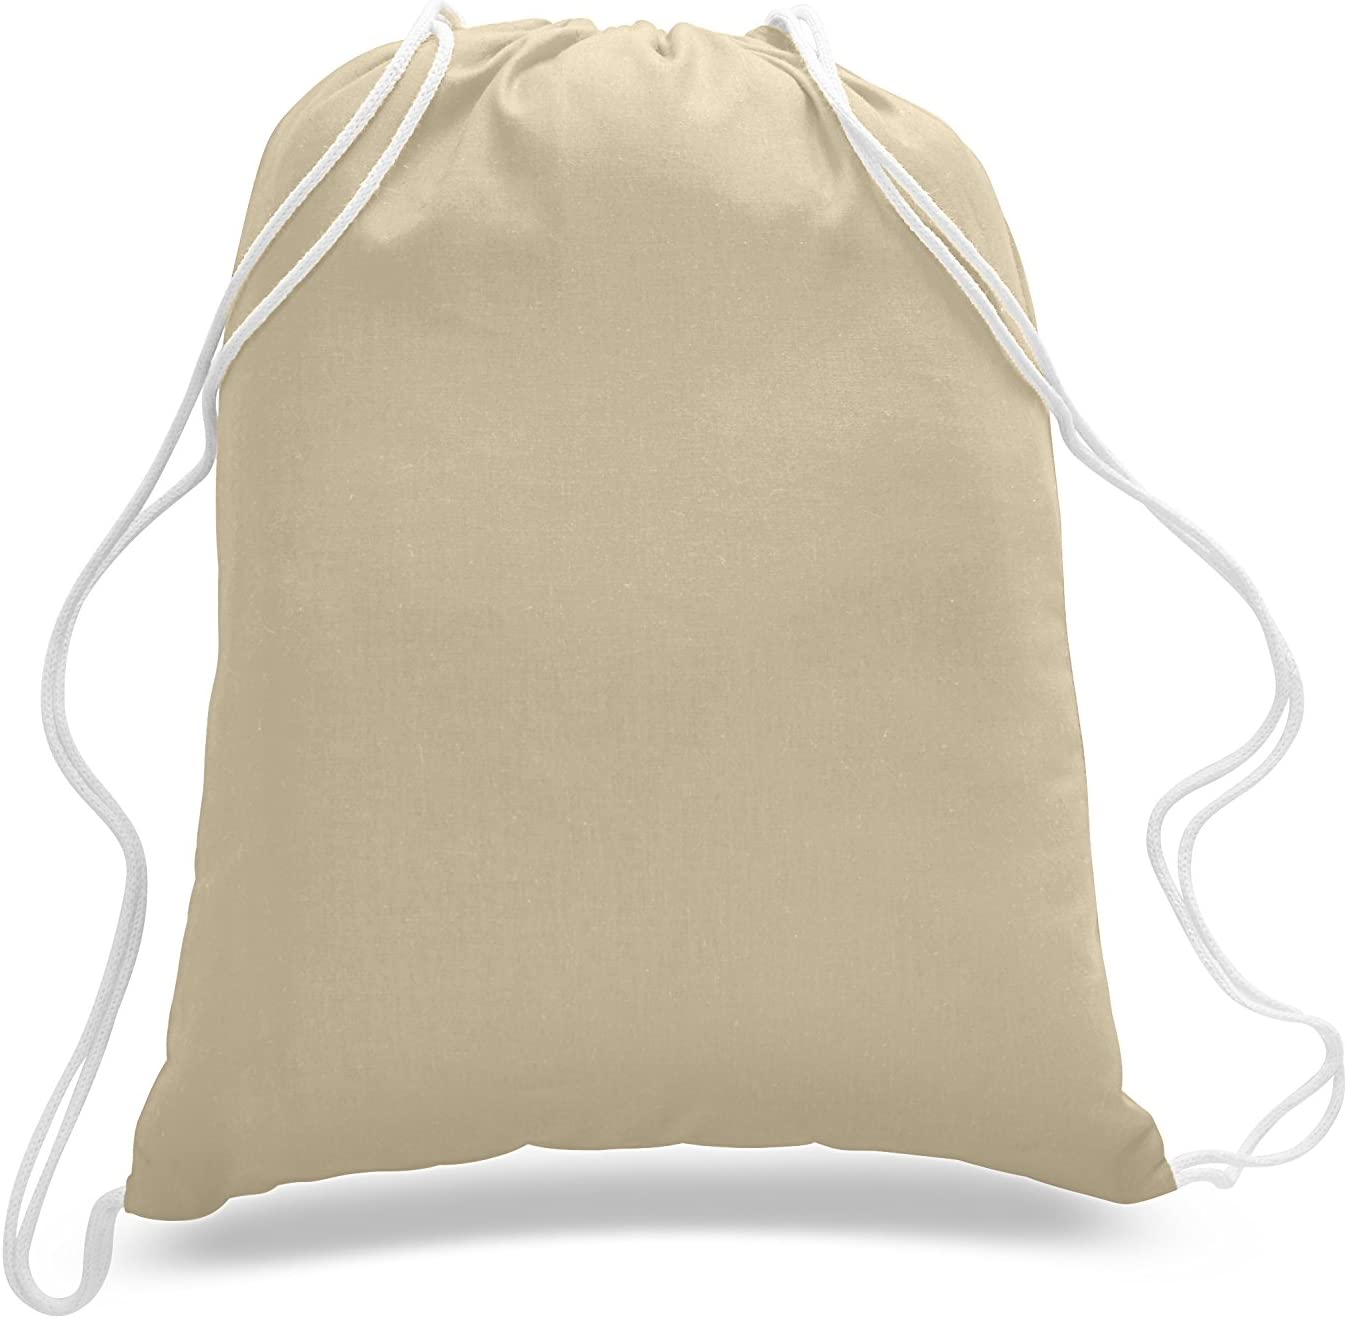 12 Pack 100/% Cotton Sport Pack Large Size Drawstring Bags Natural Color